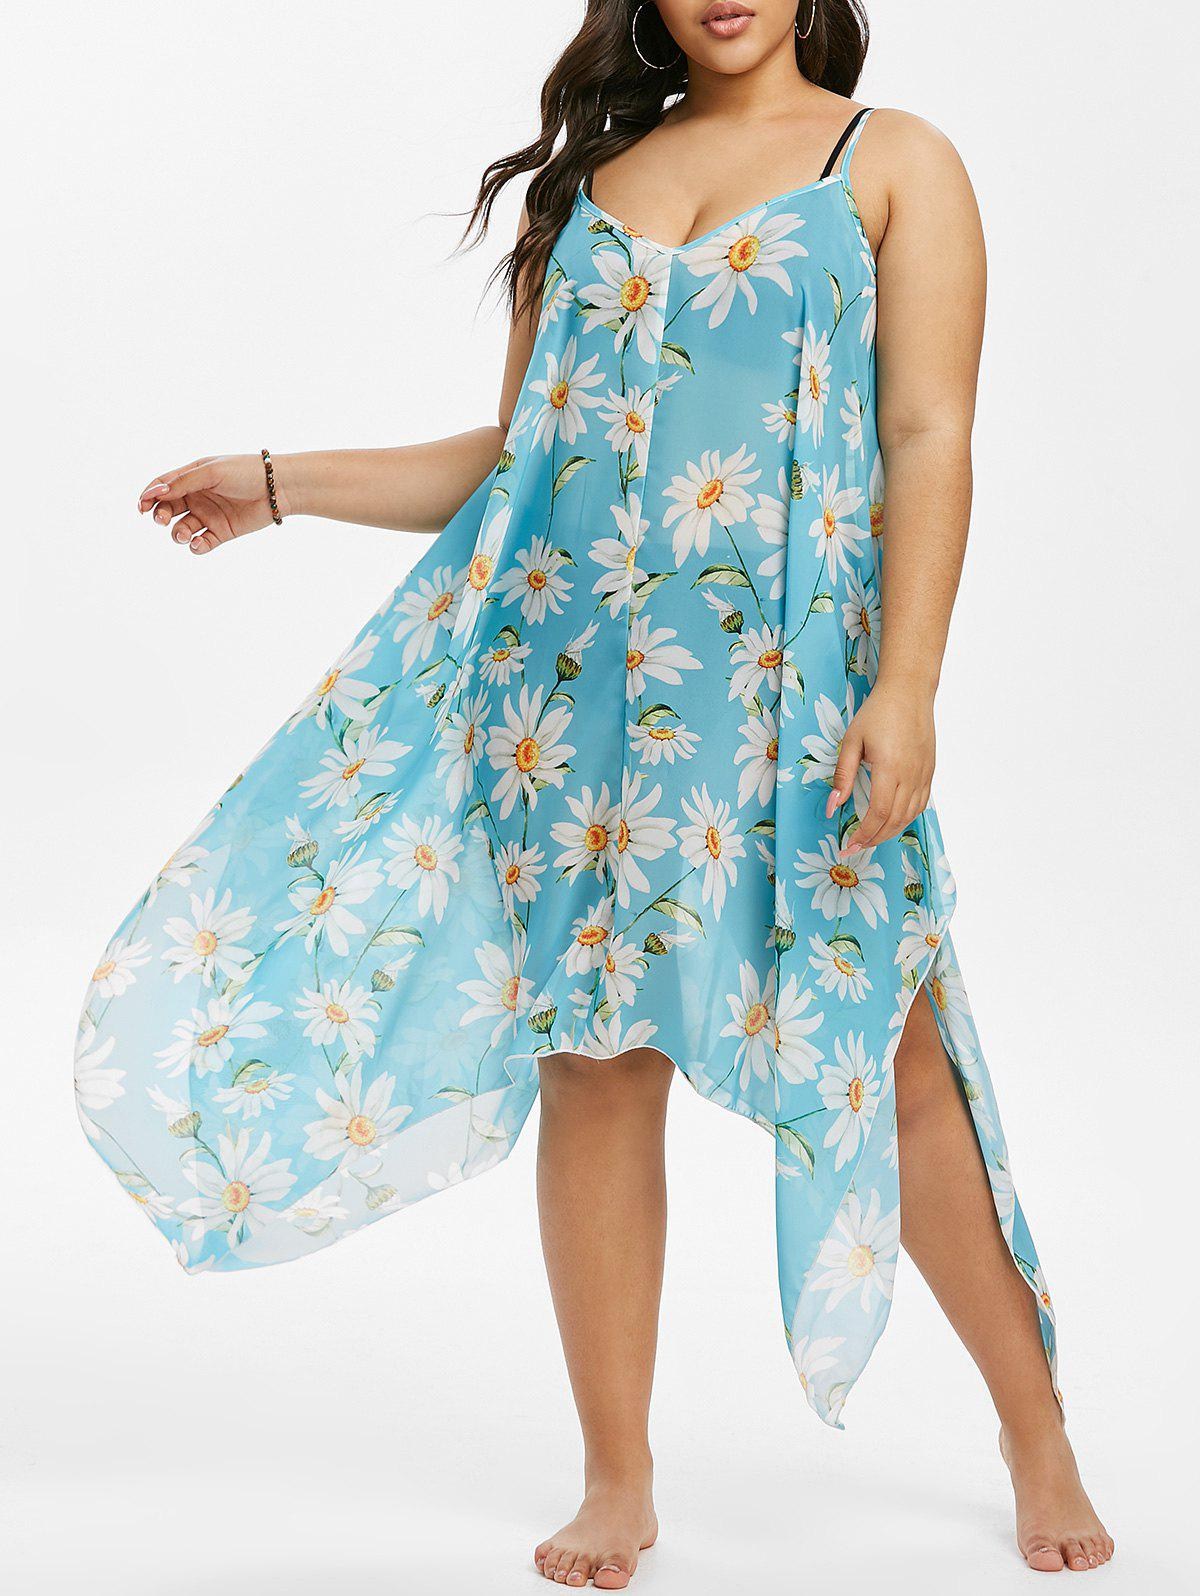 Daisy Floral Swing Handkerchief Beach Plus Size Dress - LIGHT AQUAMARINE 2X